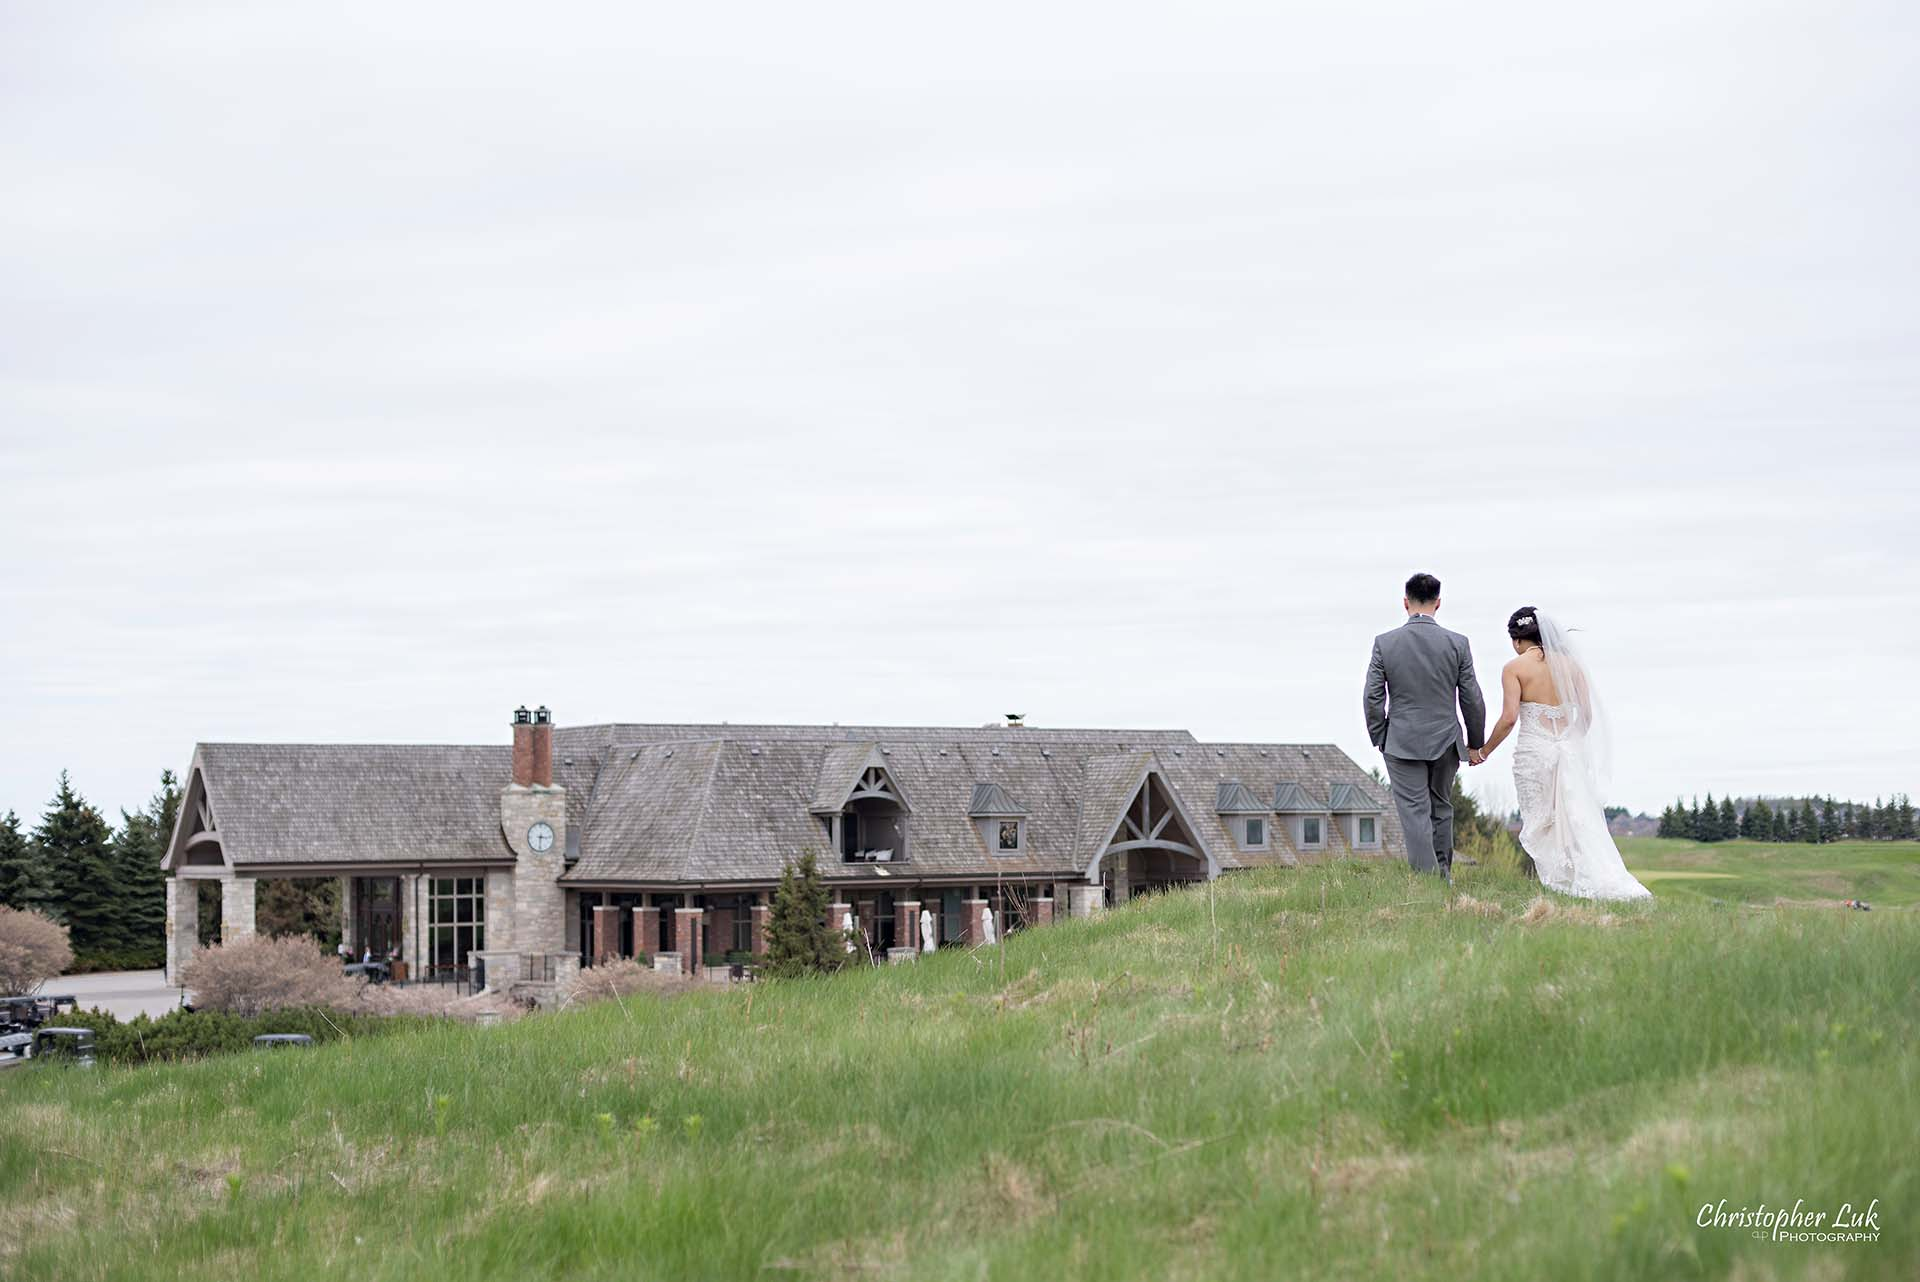 Christopher Luk Toronto Wedding Photographer Eagles Nest Golf Club Course Clubhouse Walking Climbing Up a Grassy Hill Together Bride Groom Holding Hands Journey